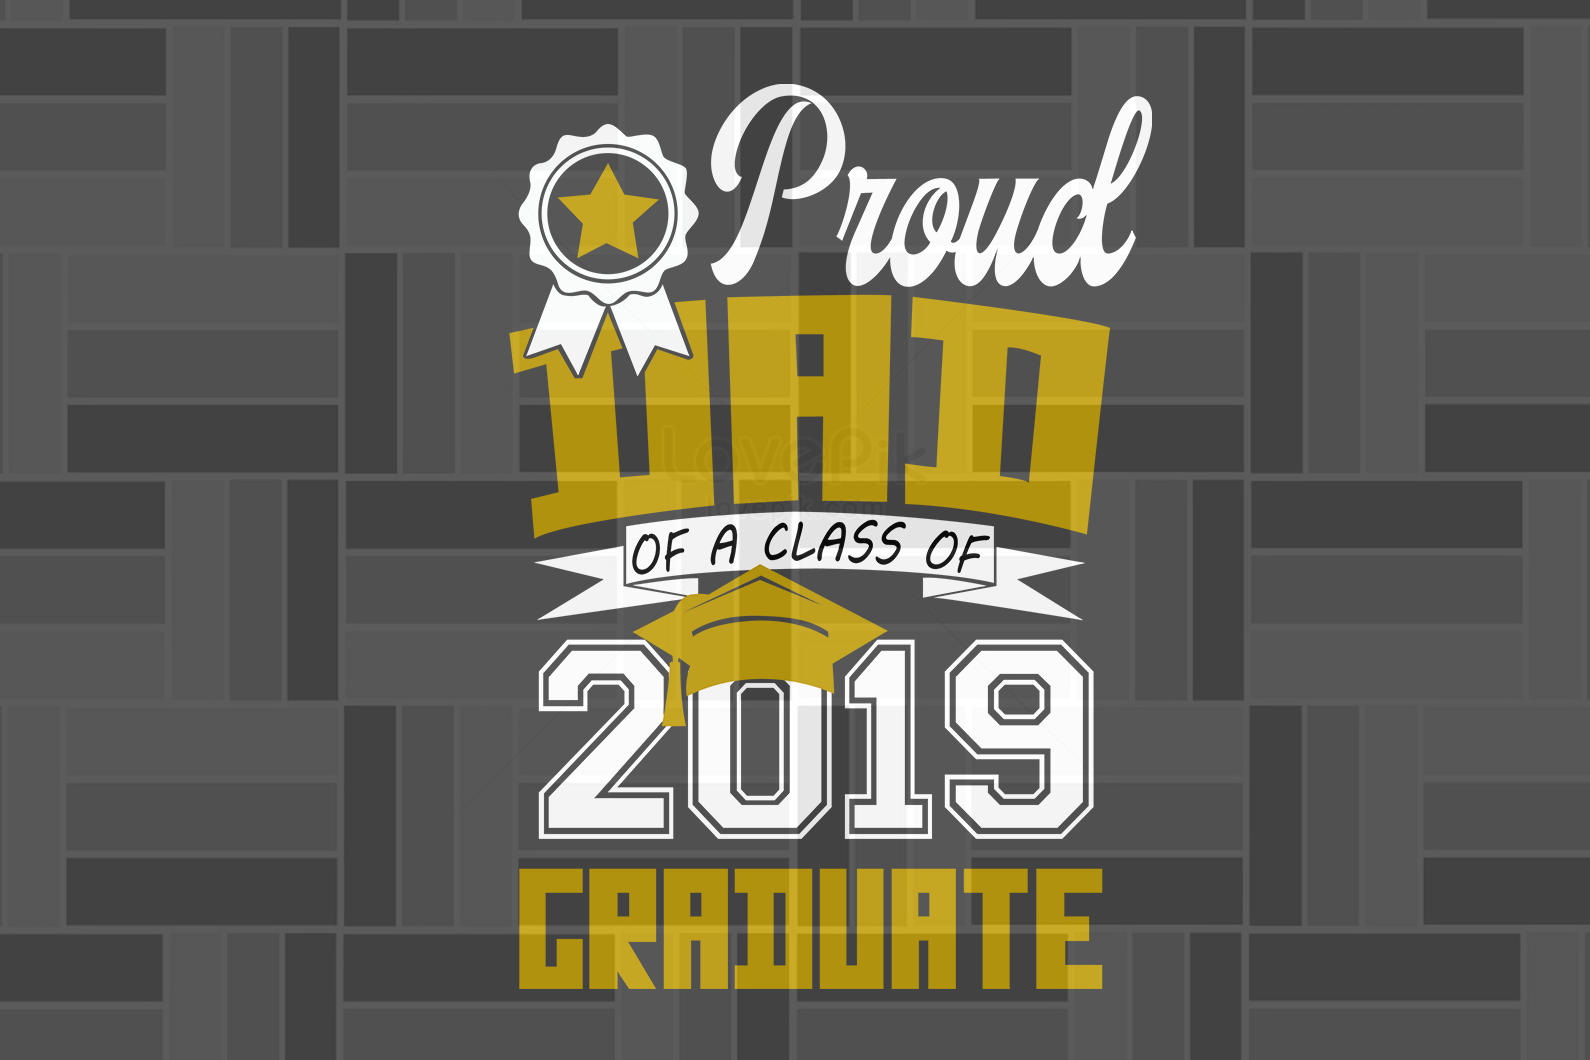 Proud dad of a class of 2019 graduate, papa svg, baba svg,father's day svg, father svg,  daddy svg, poppop svg Files For Silhouette, Files For Cricut, SVG, DXF, EPS, PNG, Instant Download